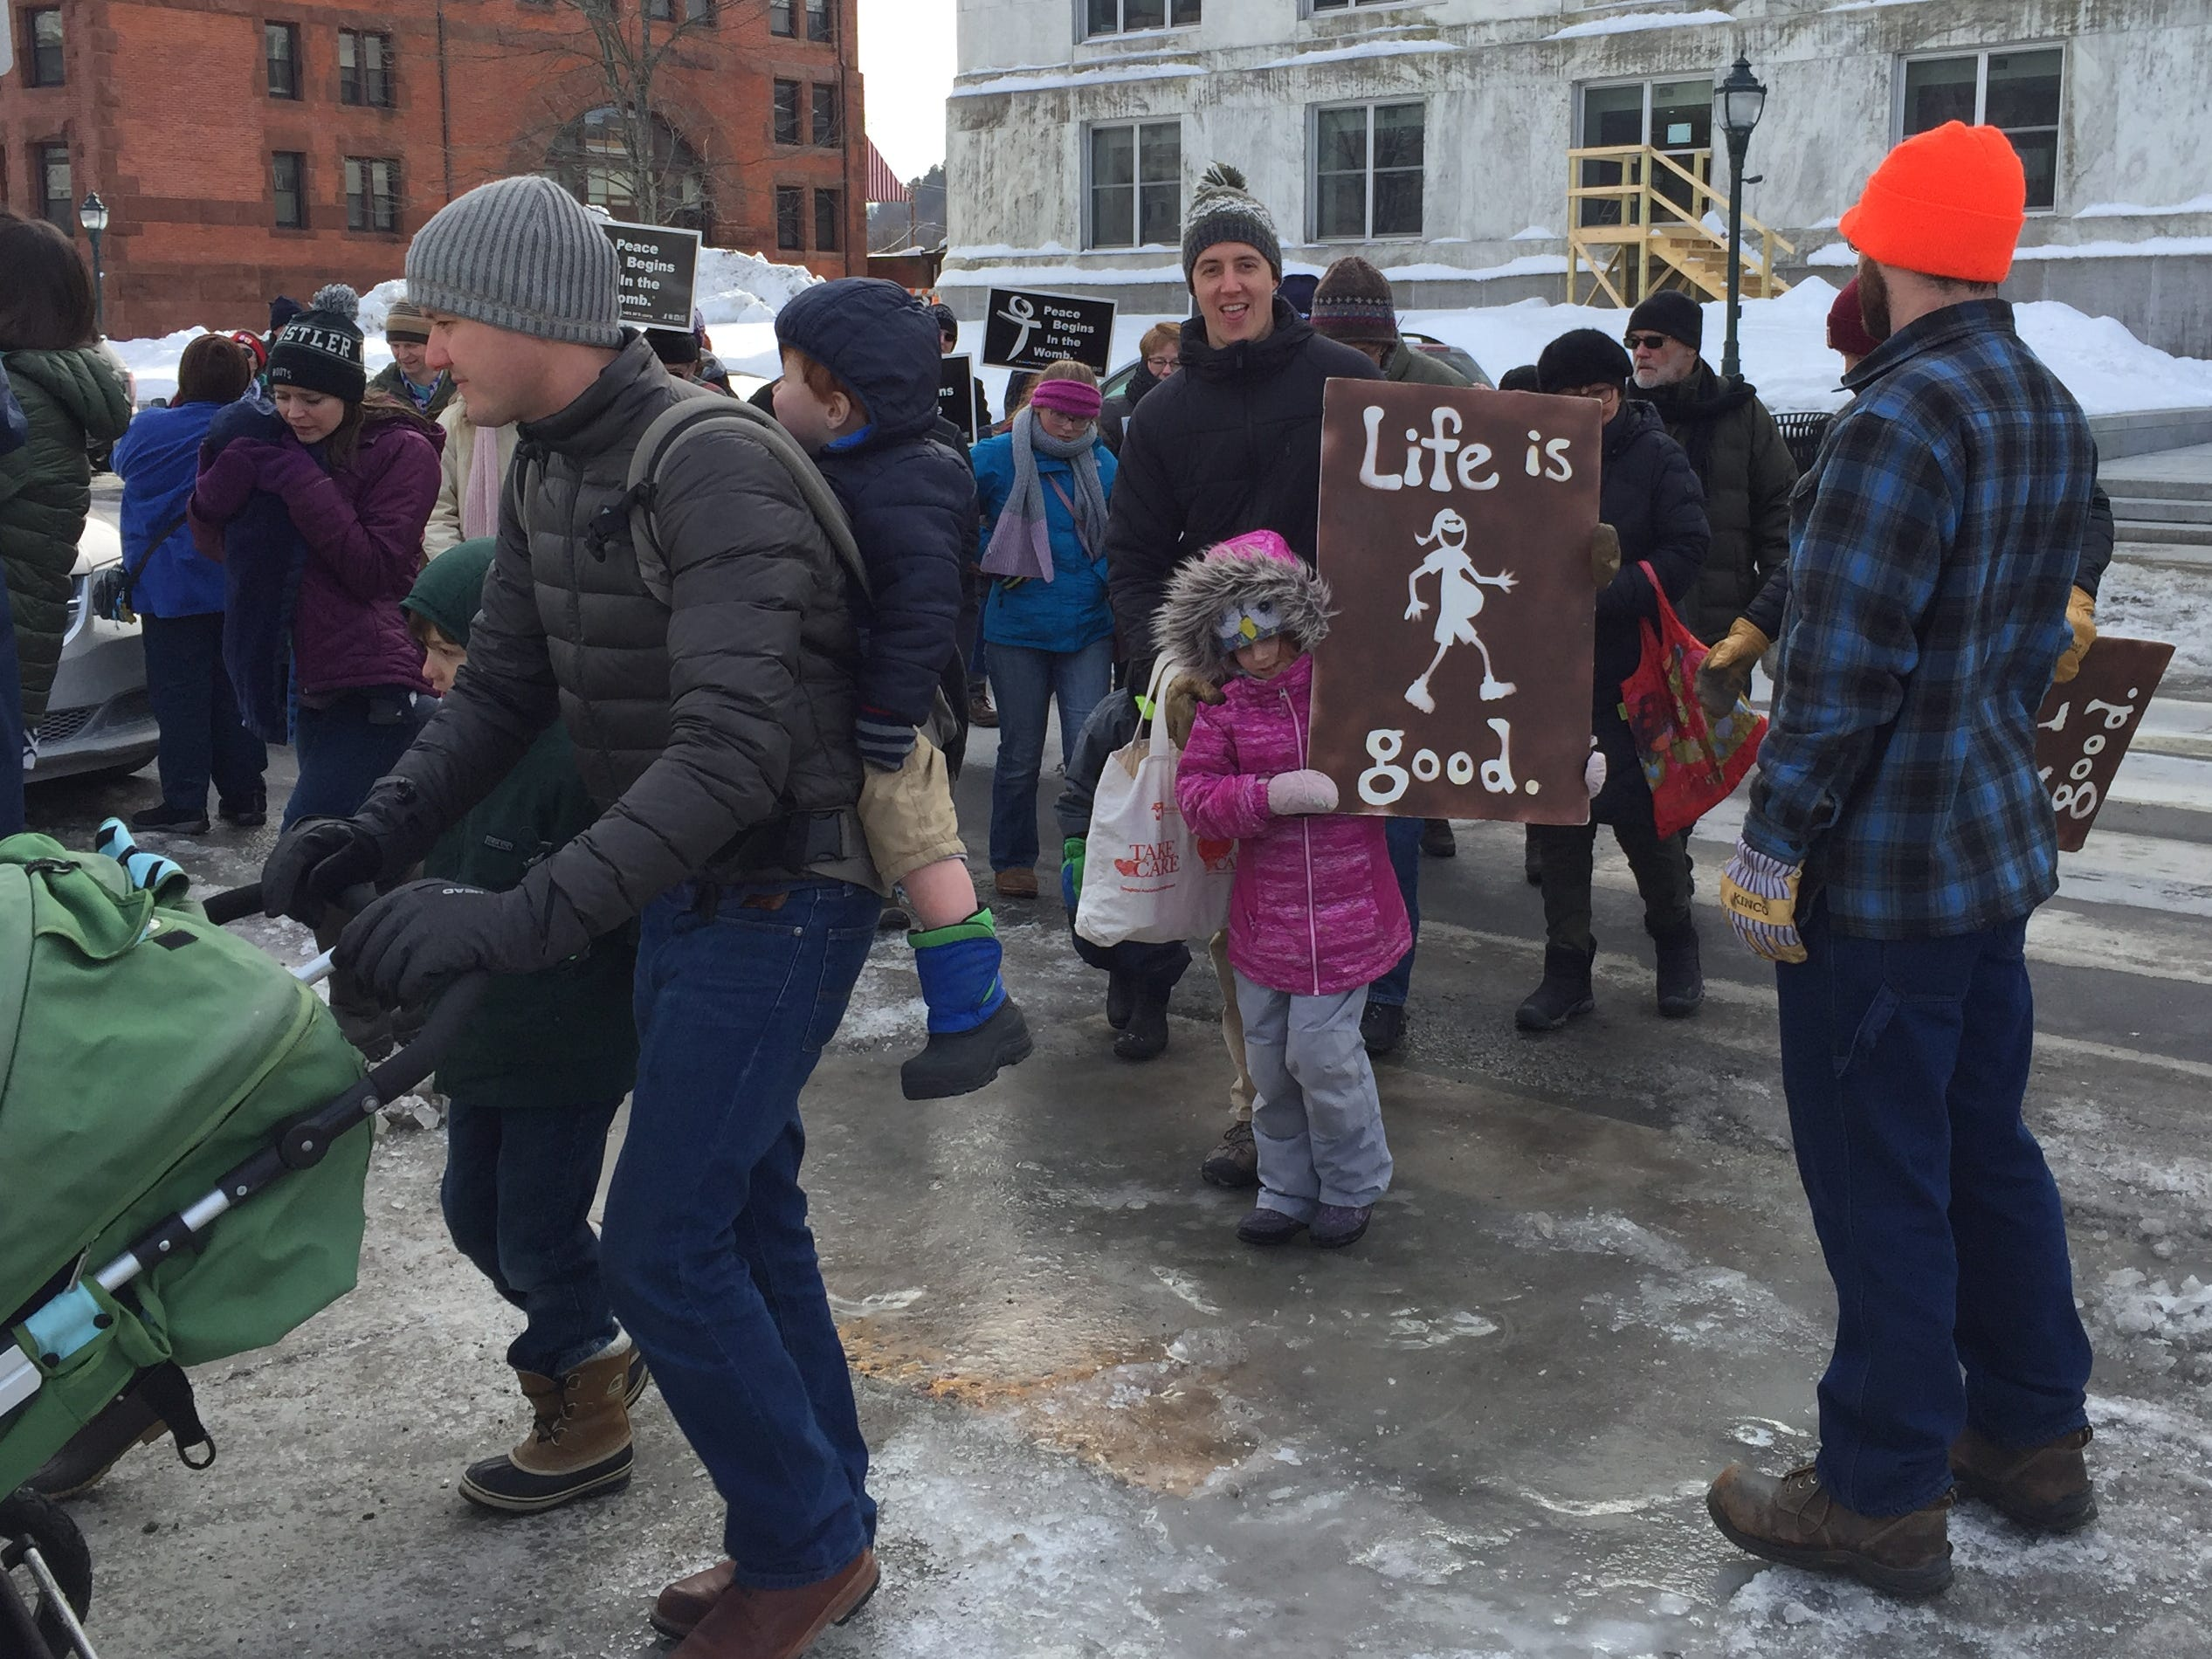 Ben Olson and daughter from Morrisville make it to the Vermont State Capital in Montpelier as an anti-abortion rally gets underway on Jan. 26, 2019.